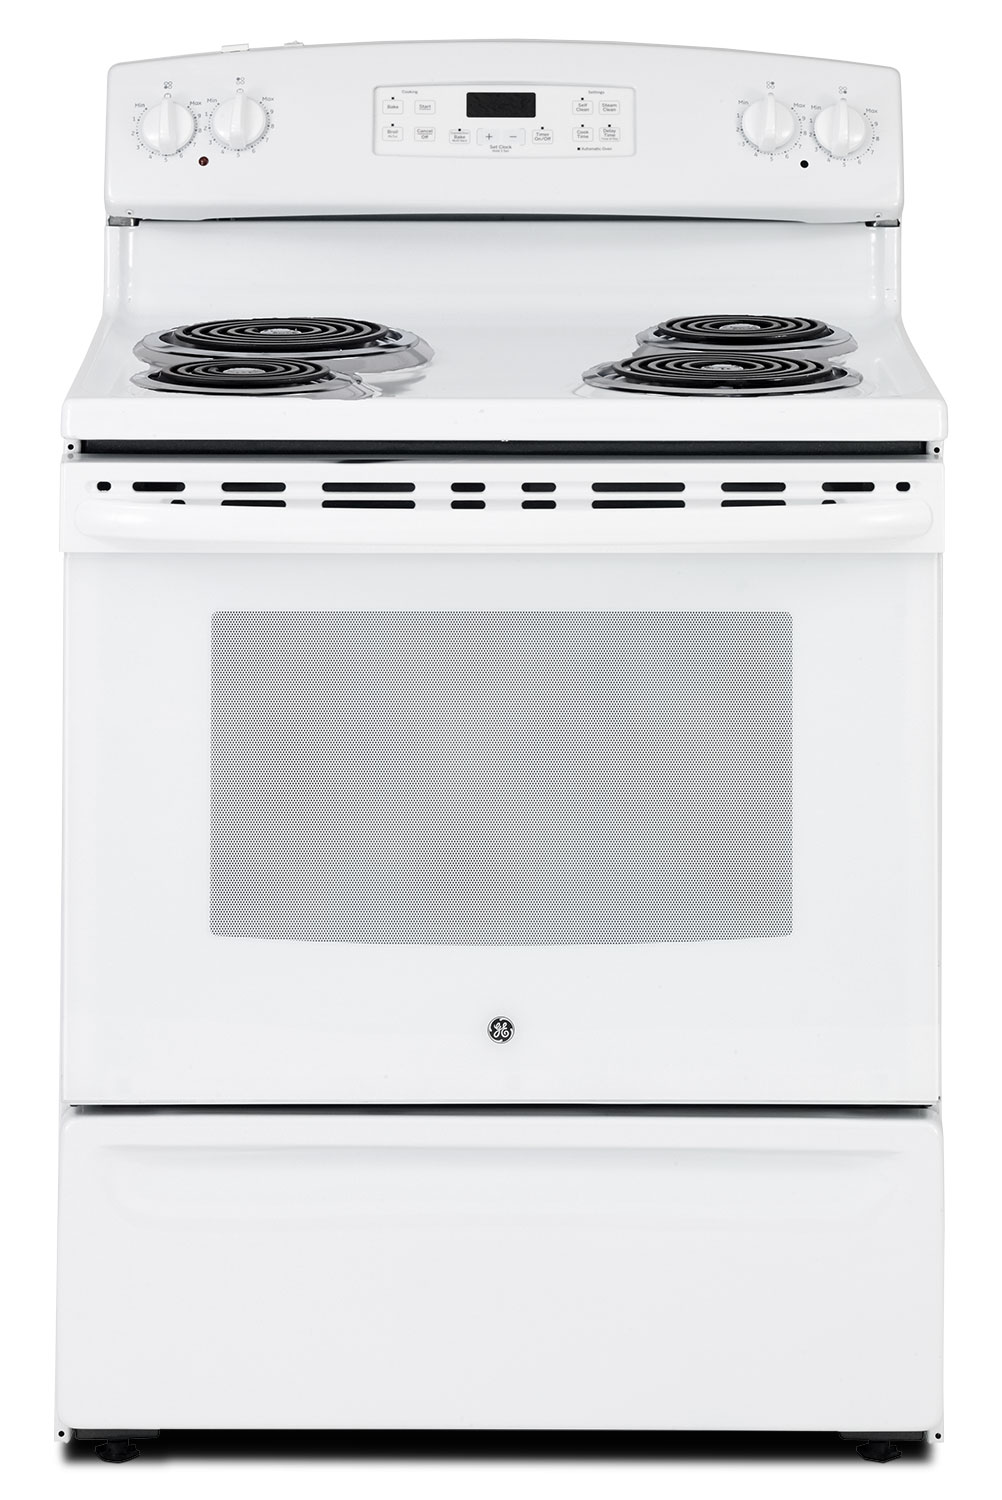 Cooking Products - GE 5.0 Cu. Ft. Freestanding Electric Range – JCB560DJWW